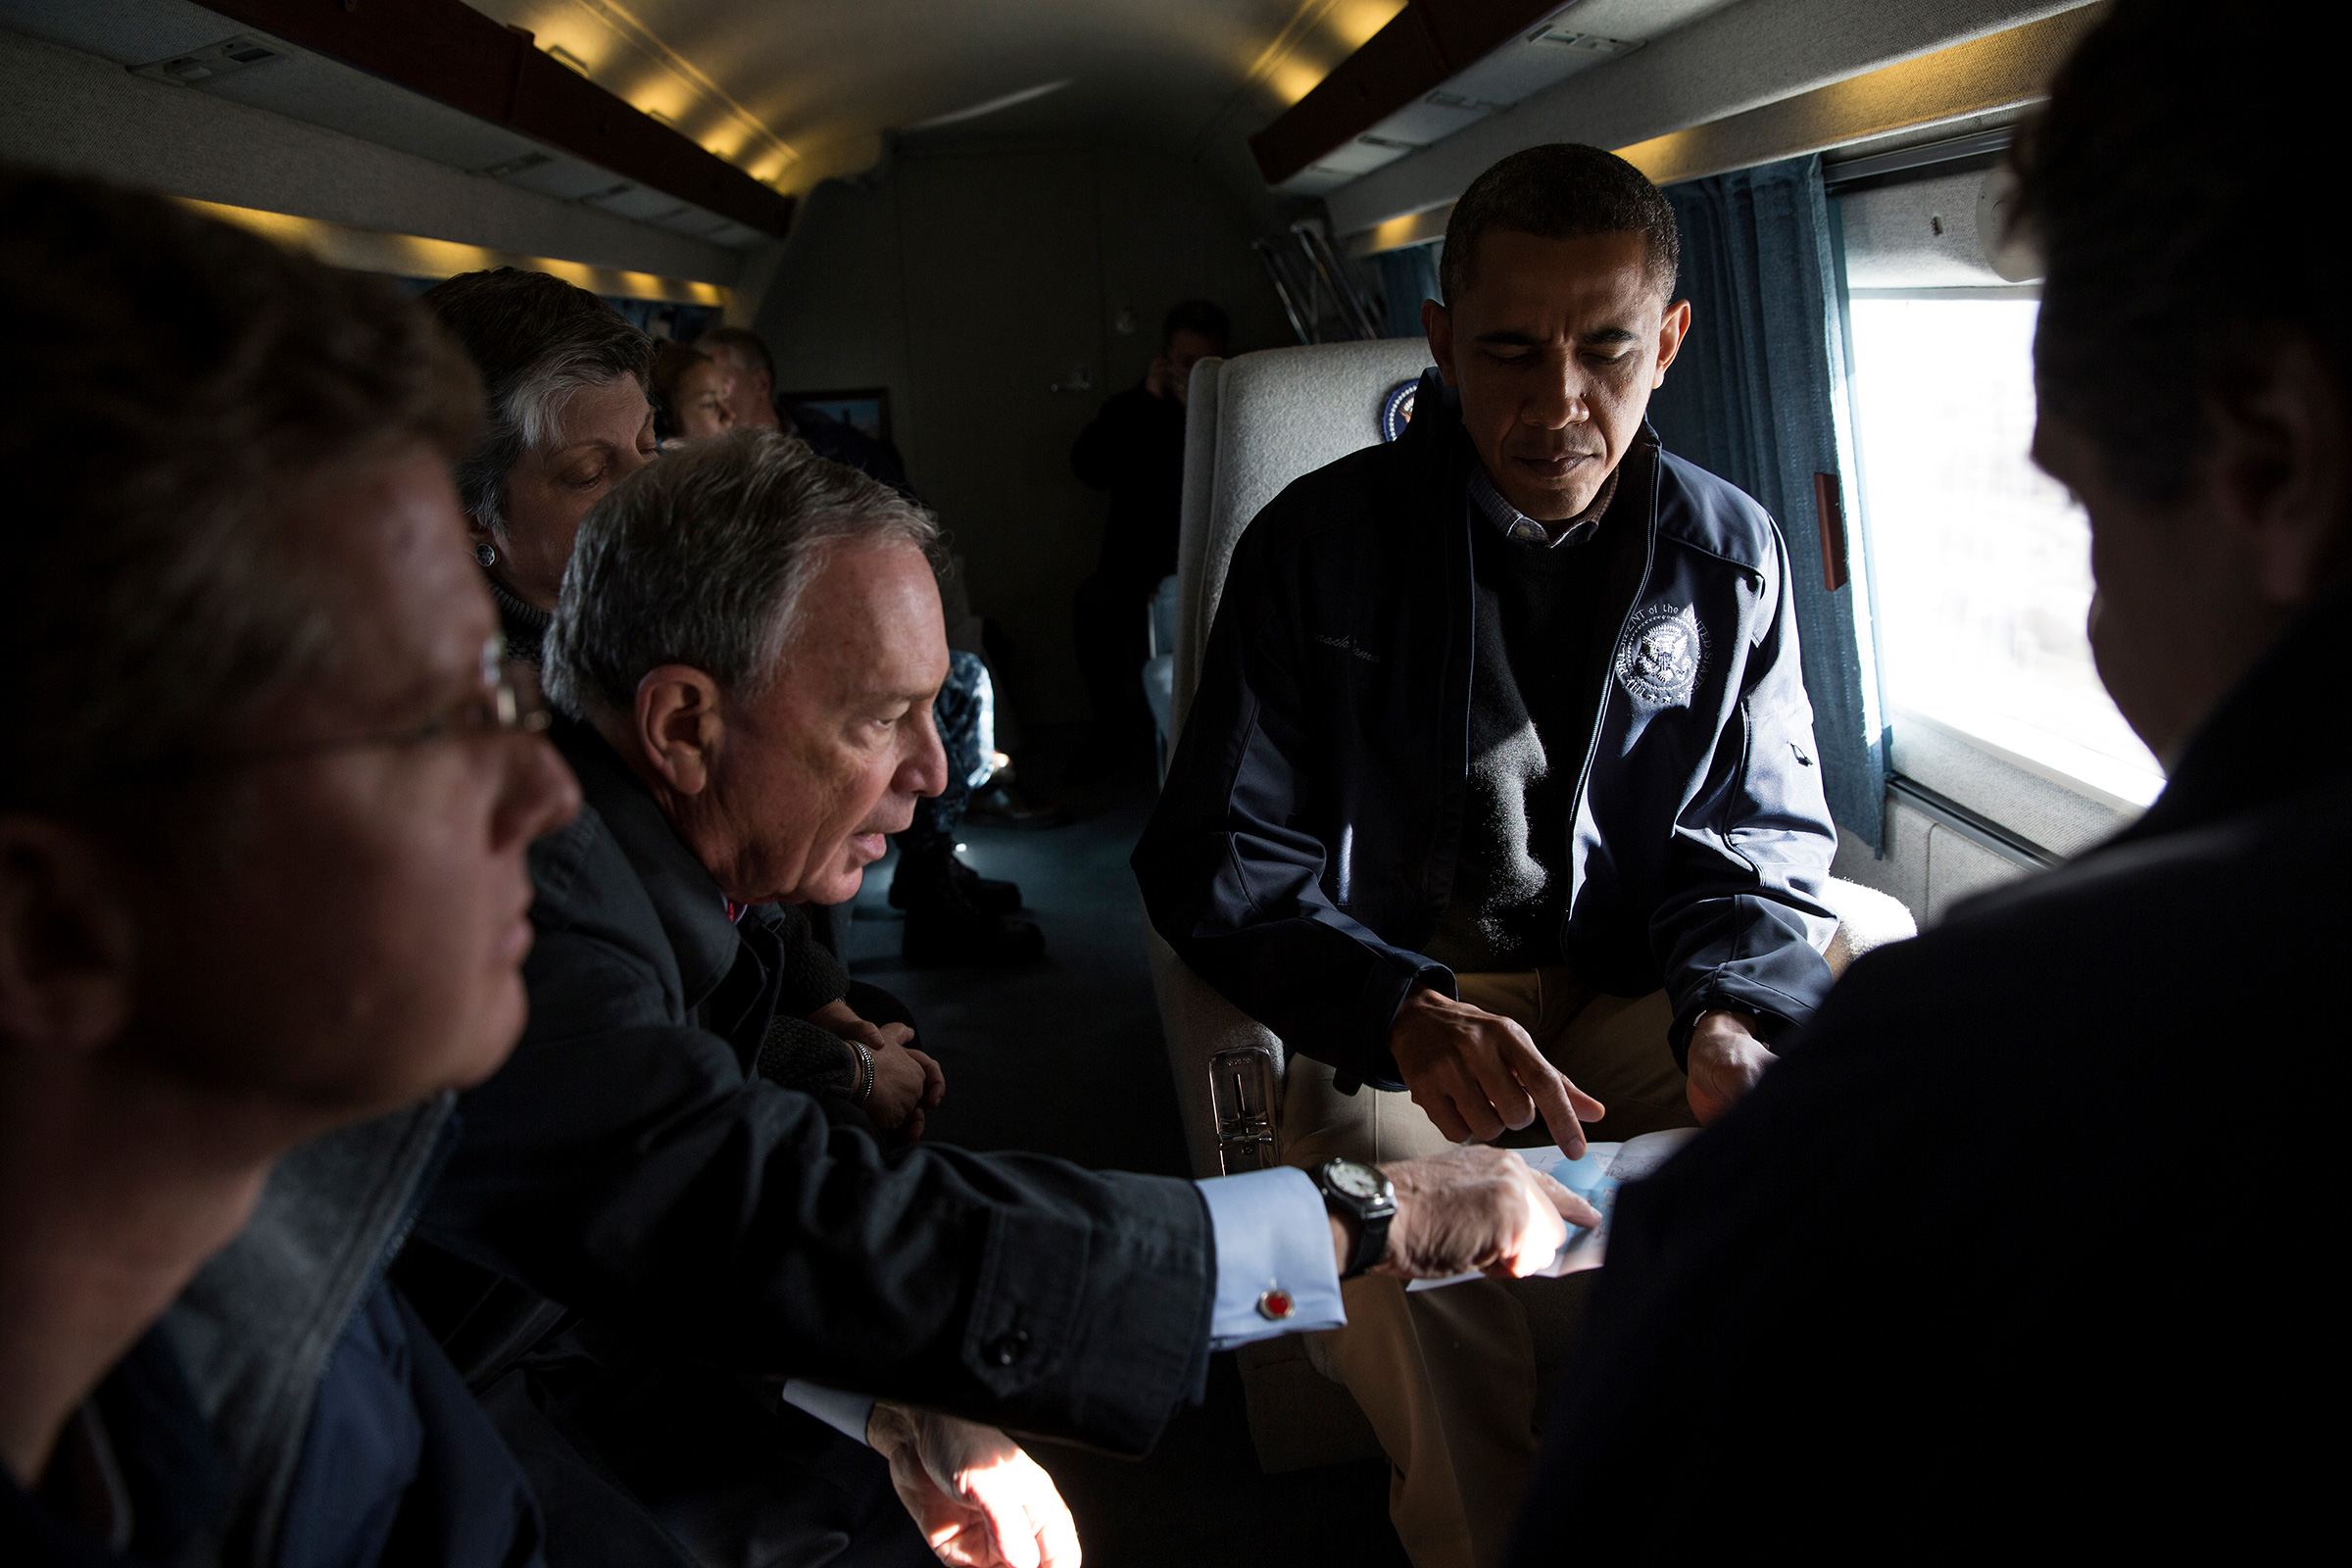 Bloomberg, the New York City mayor, views a map with President Obama during an aerial tour to view damage there from Superstorm Sandy on Nov. 15, 2012.